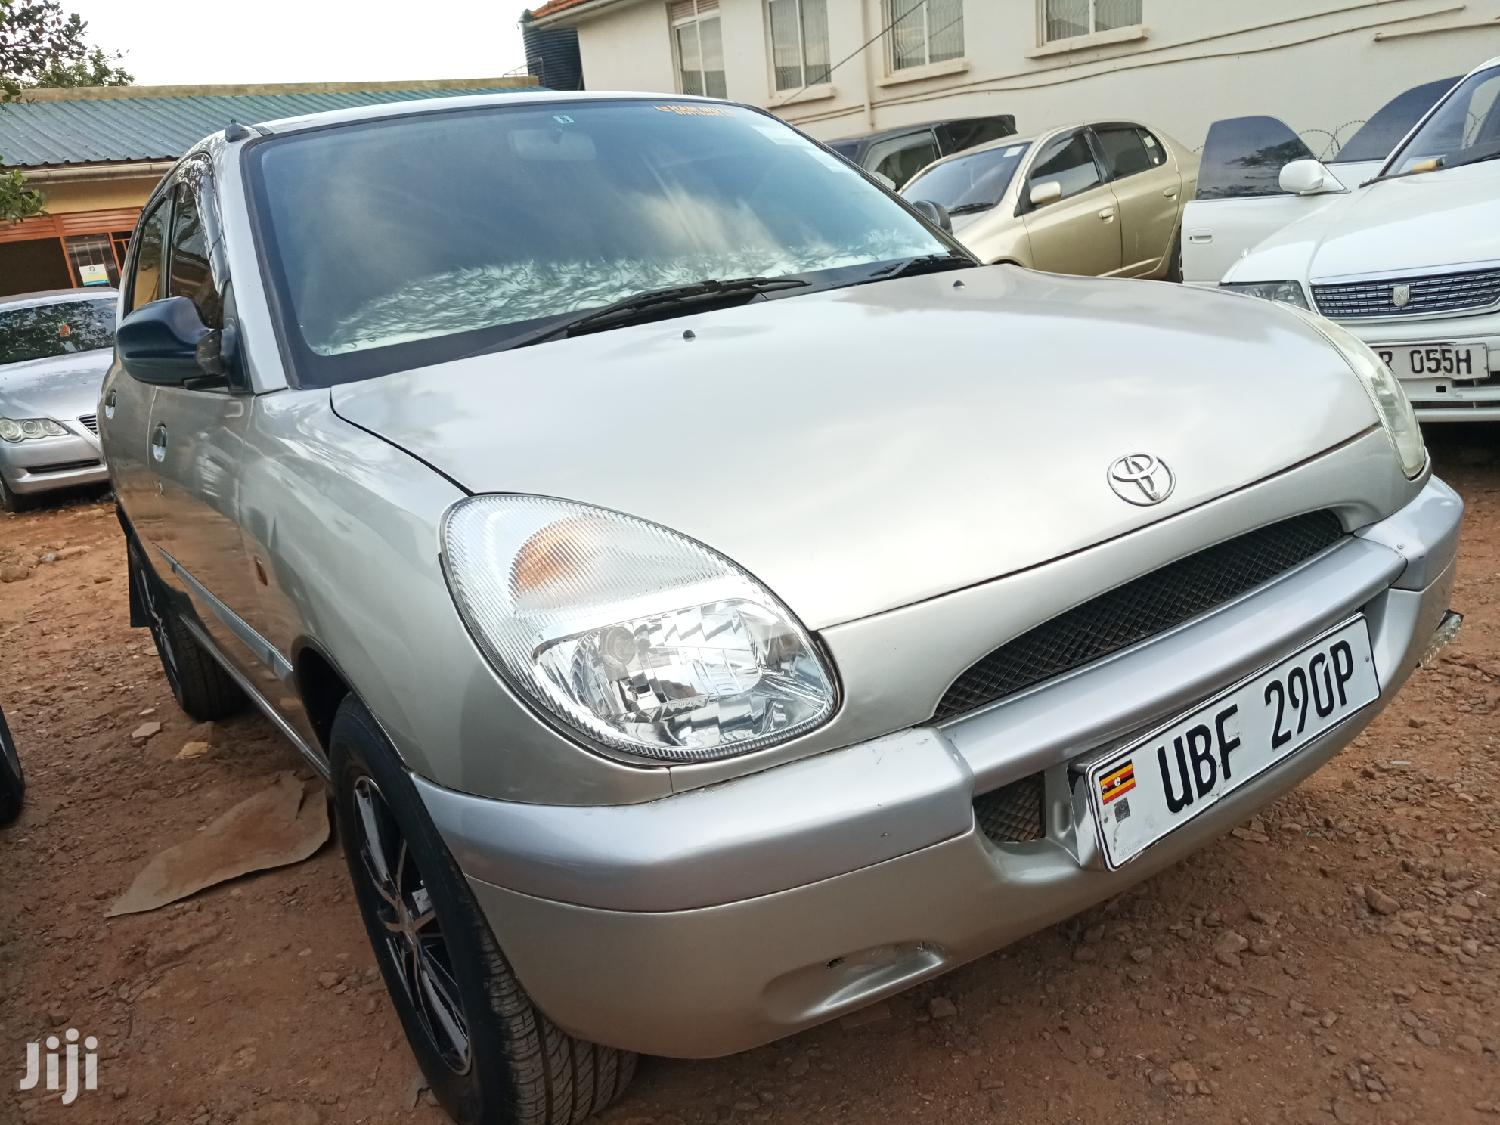 Archive: New Toyota Duet 2002 Silver